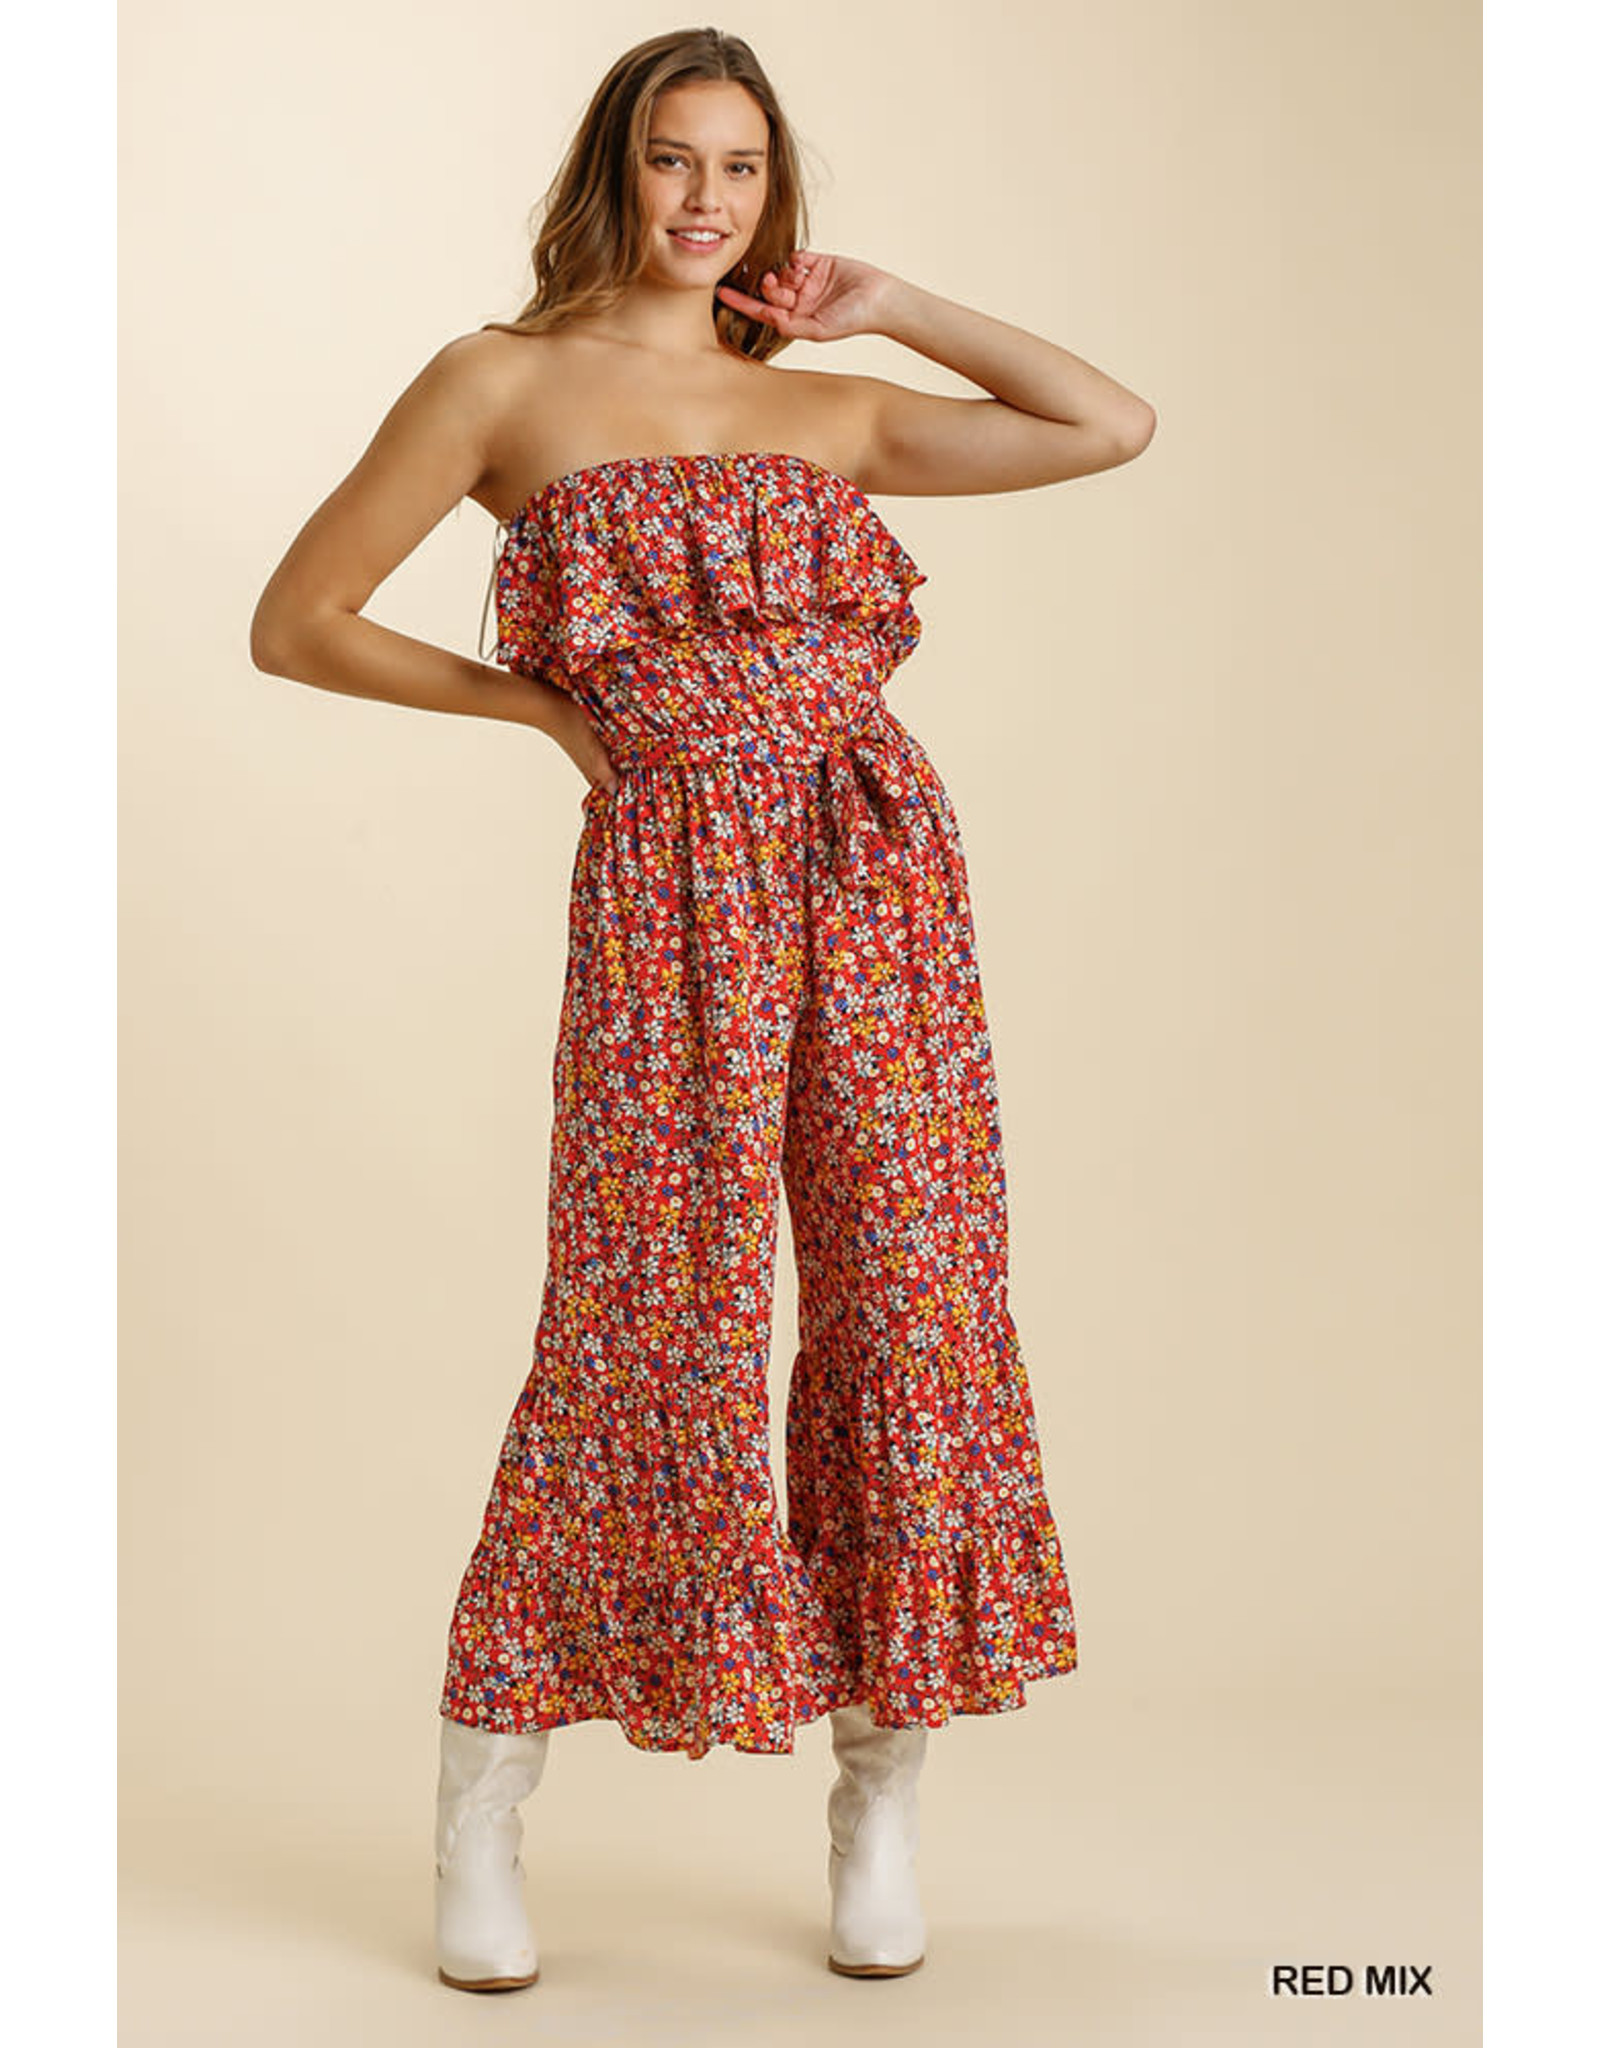 Floral Print Strapless Ruffle Romper